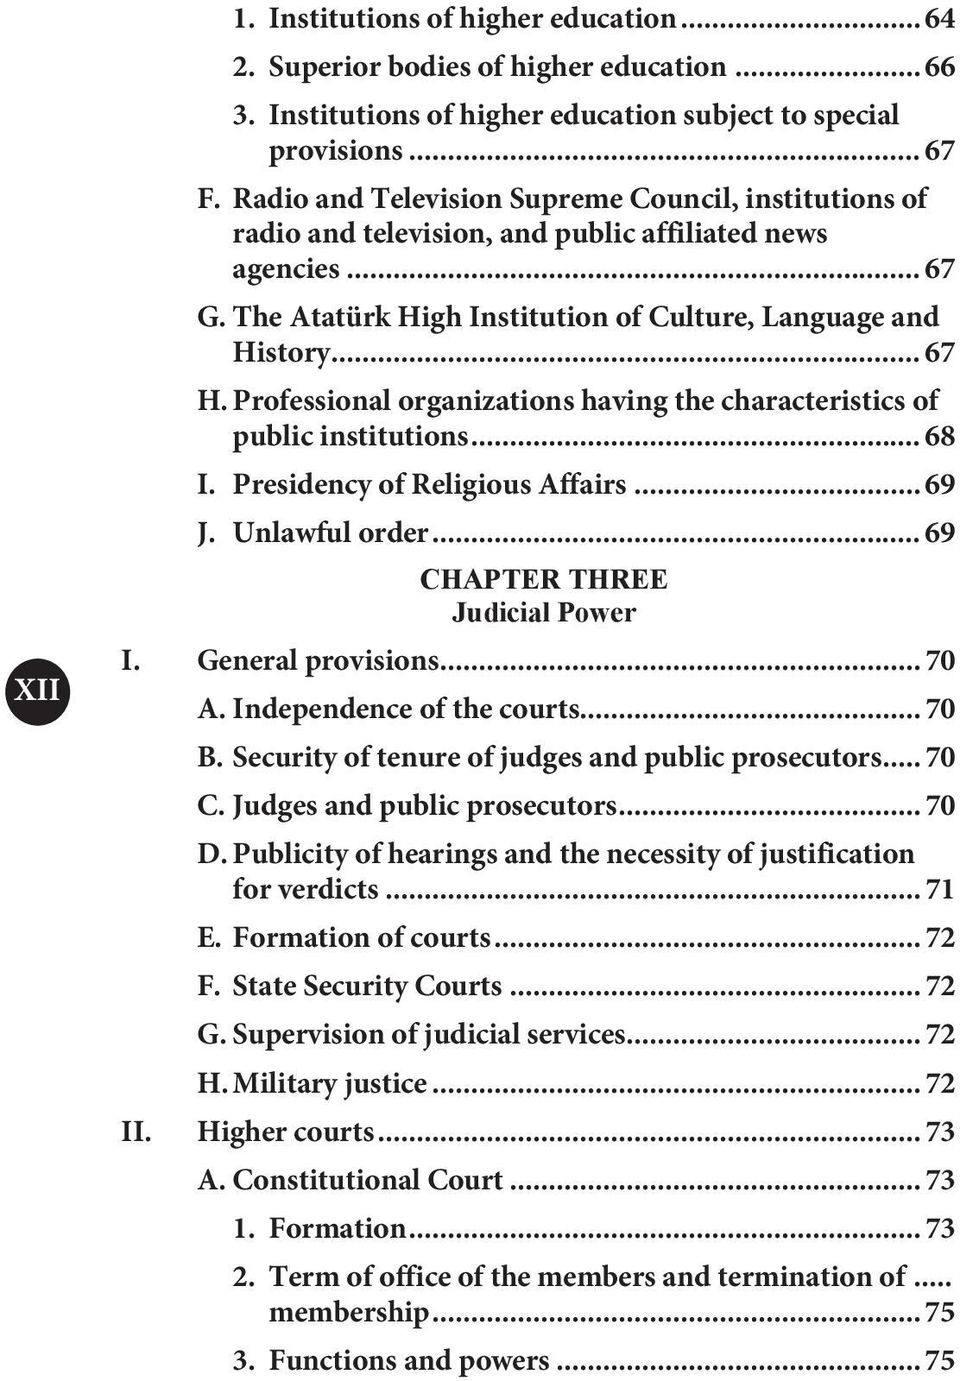 Professional organizations having the characteristics of public institutions... 68 I. Presidency of Religious Affairs... 69 J. Unlawful order... 69 CHAPTER THREE Judicial Power I. General provisions.